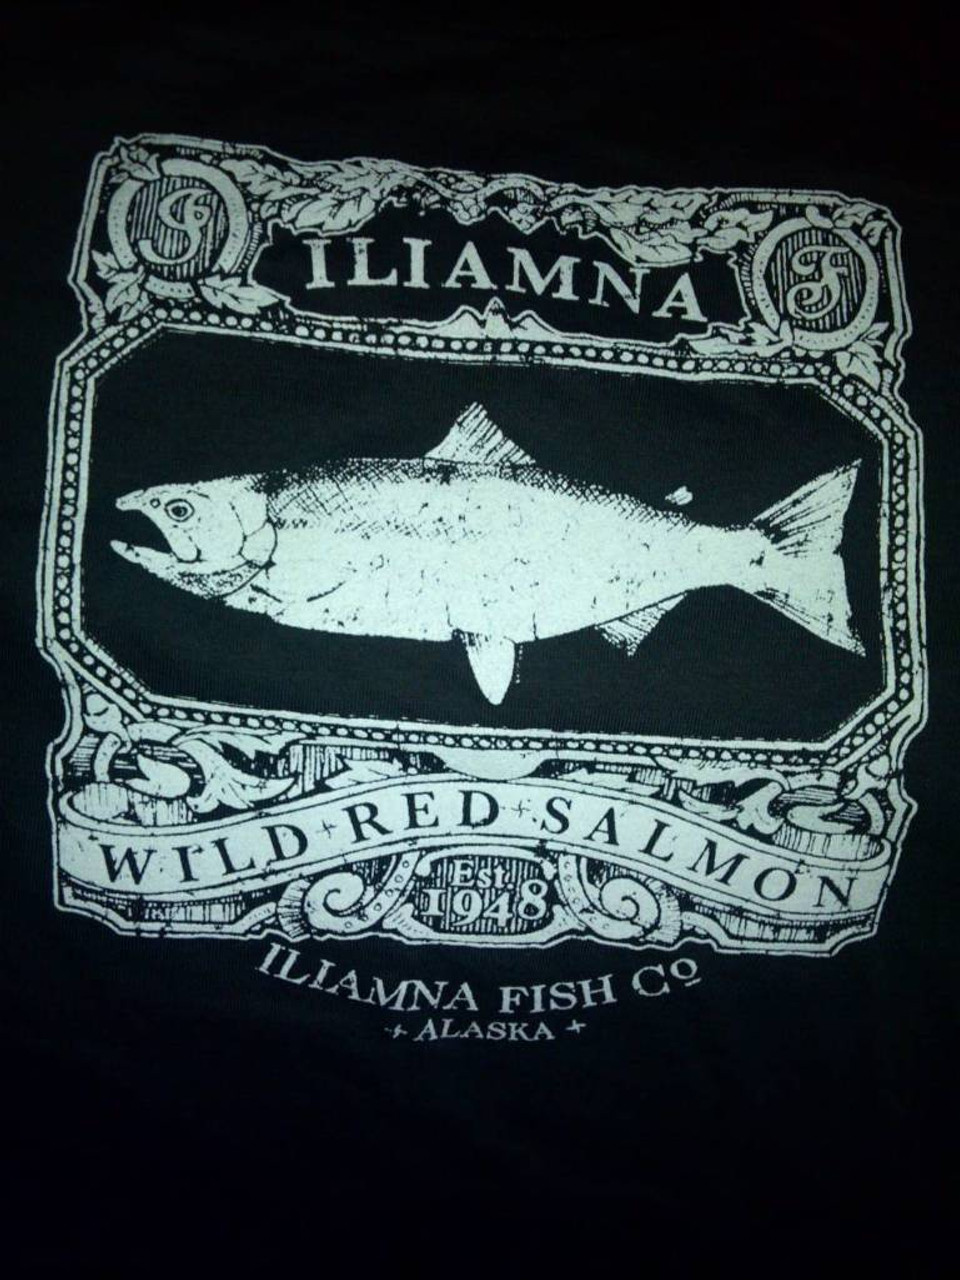 And the best part of each August is picking up my wild salmon share from the good folks of Iliamna Fish Co.  This year I got a shirt to celebrate :)